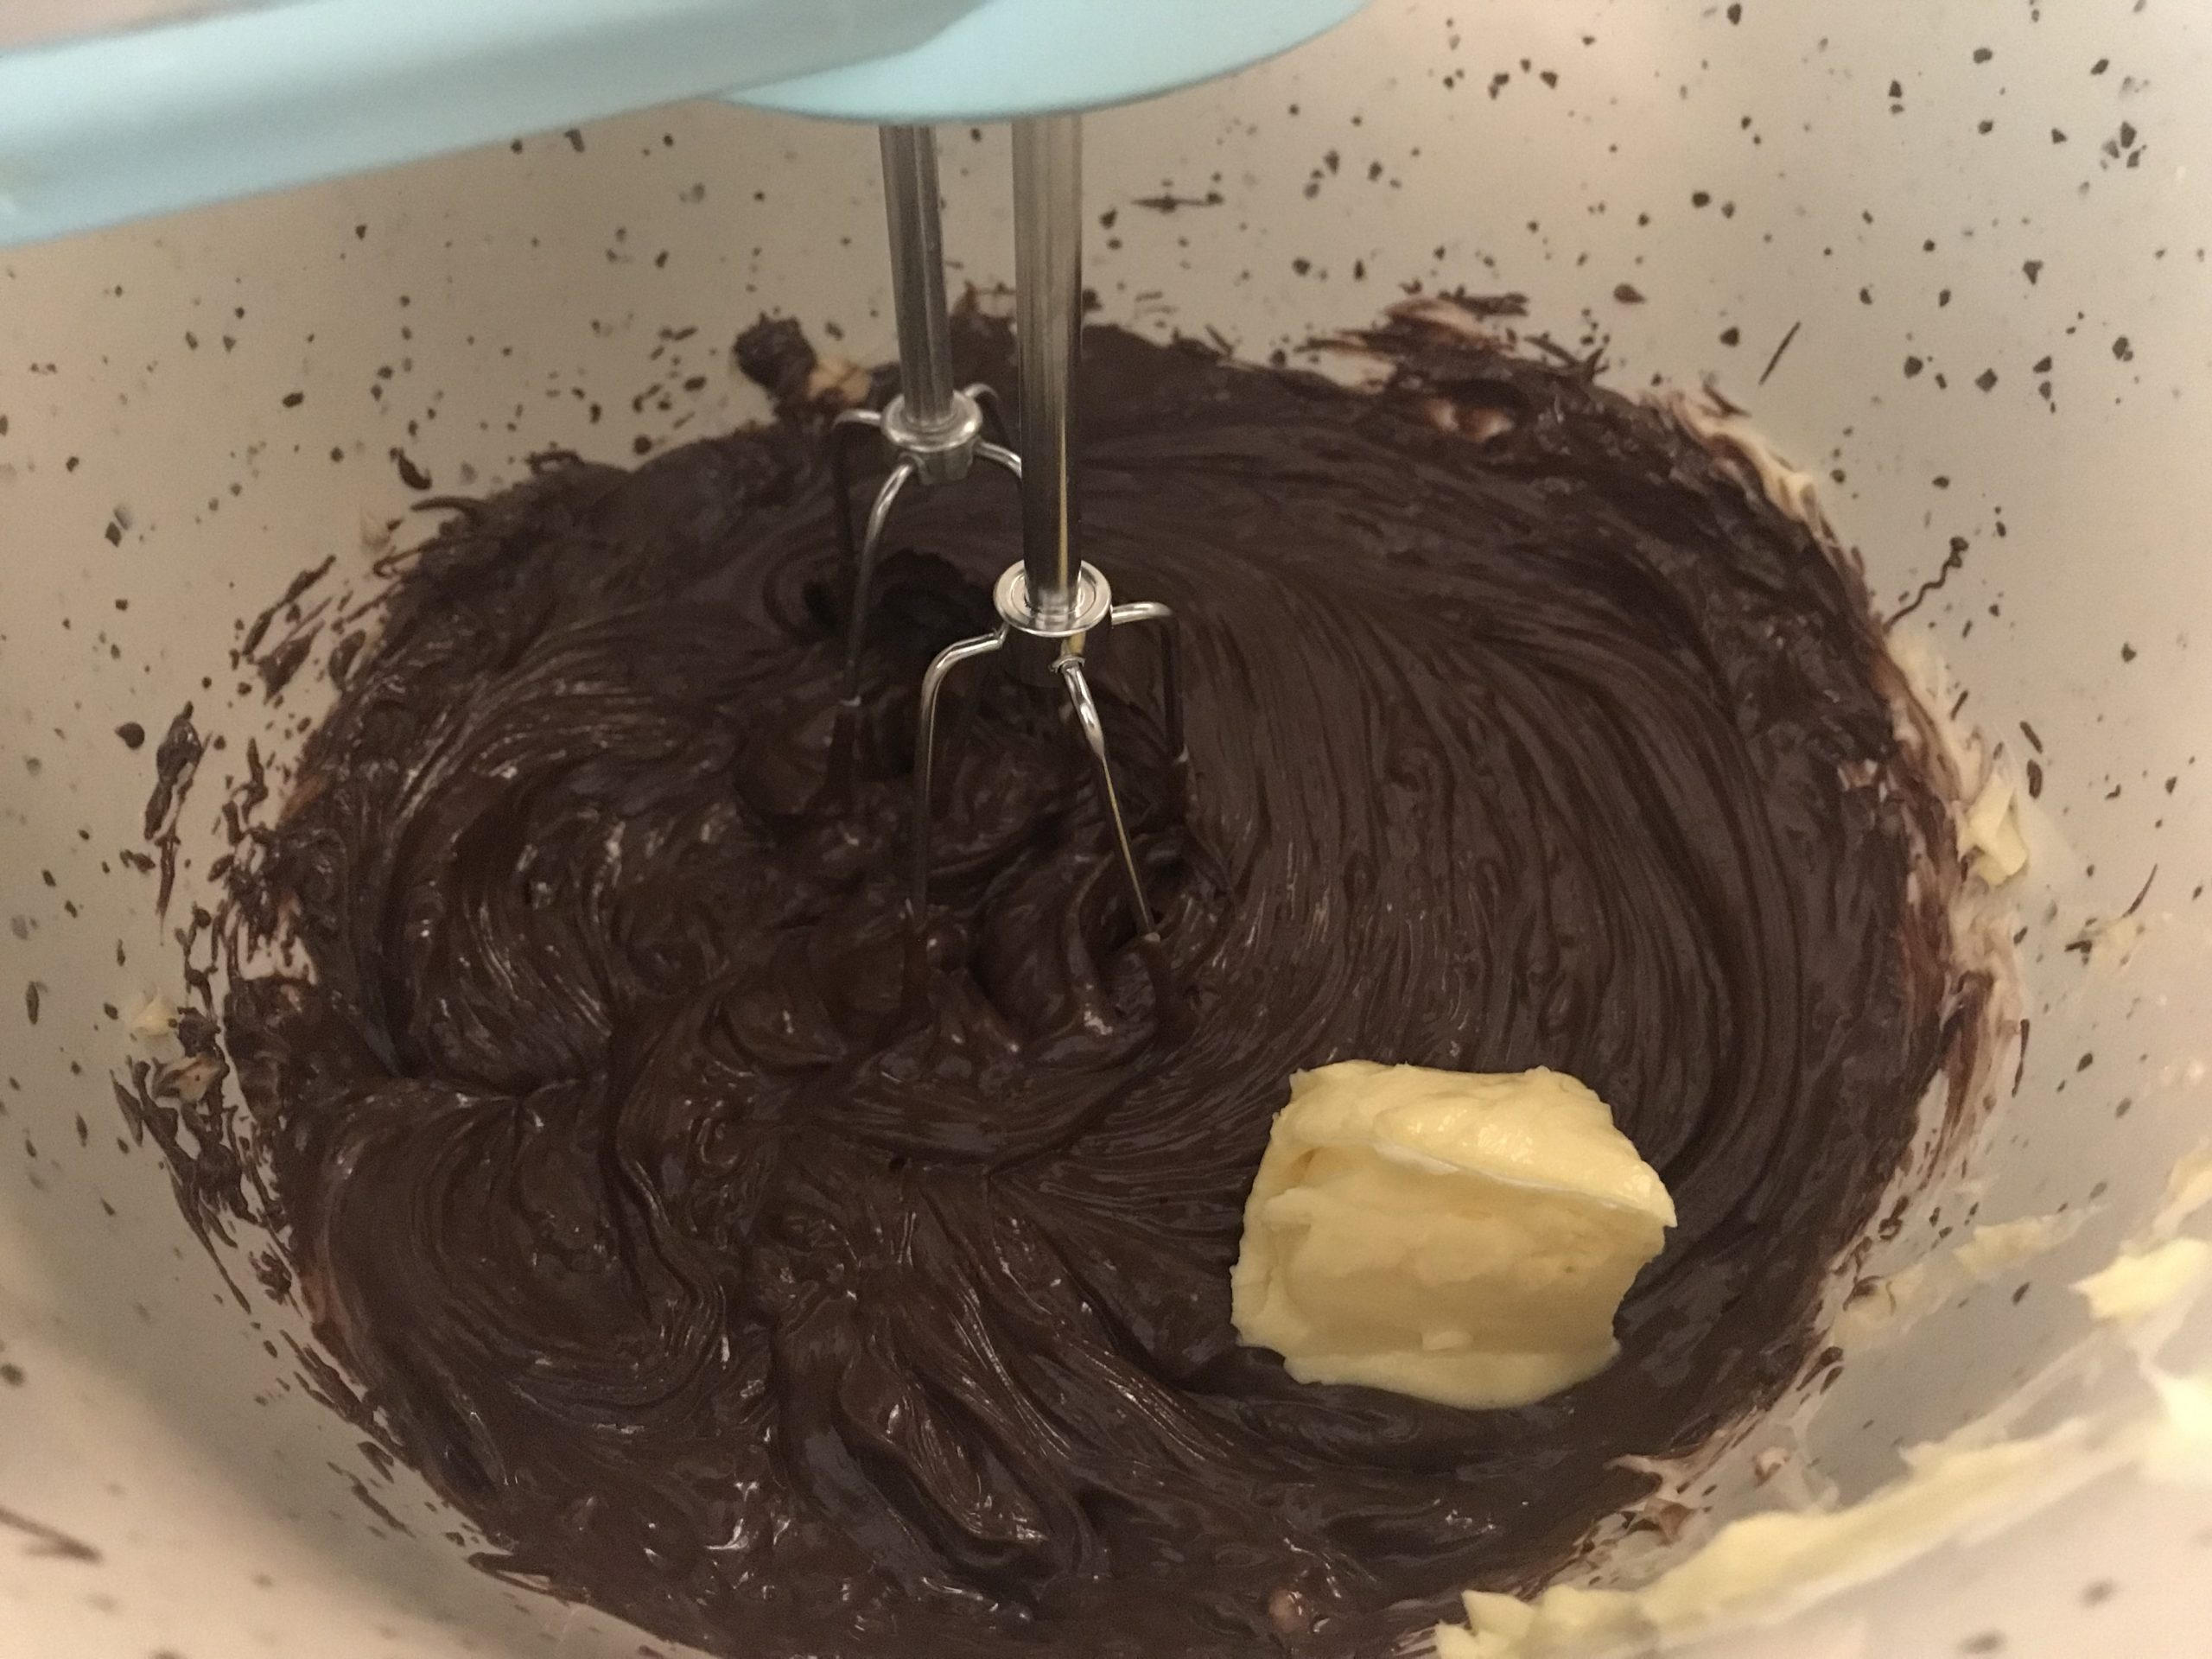 Mixing ingredients for Flourless Chocolate Cake